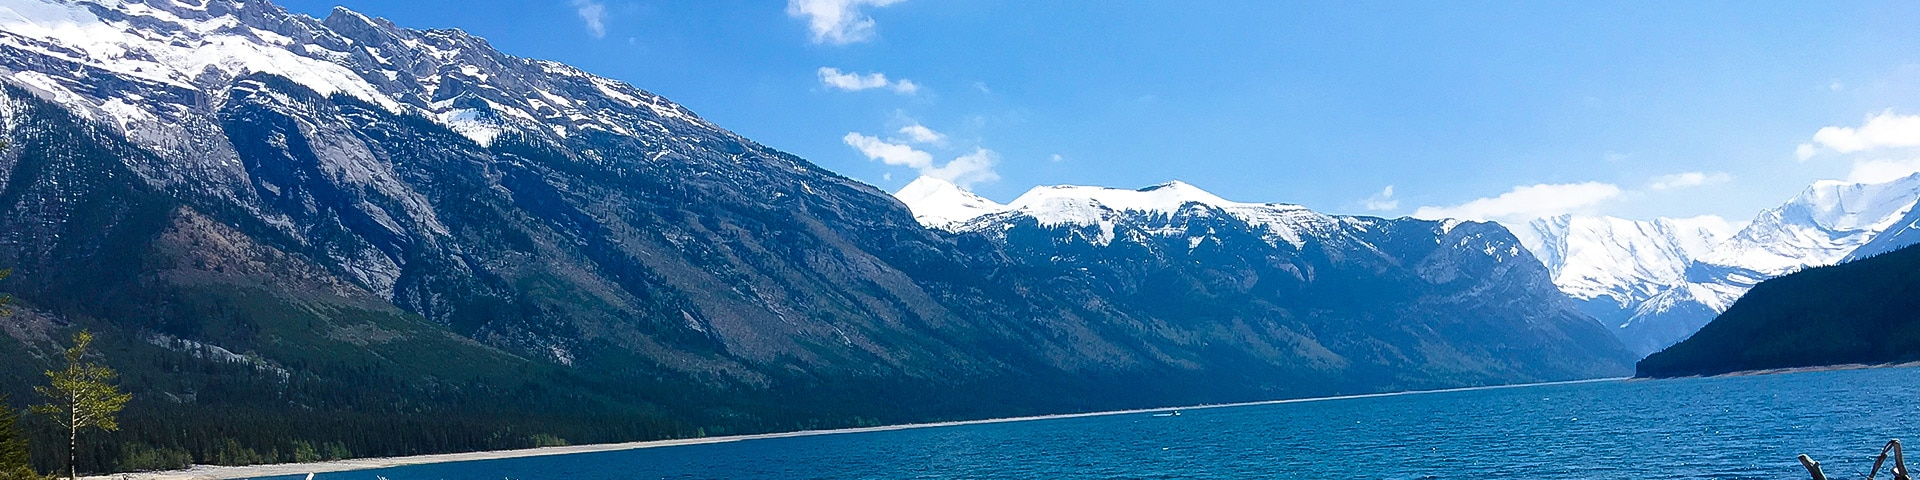 Panorama from Lake Minnewanka backpacking trail in Banff National Park